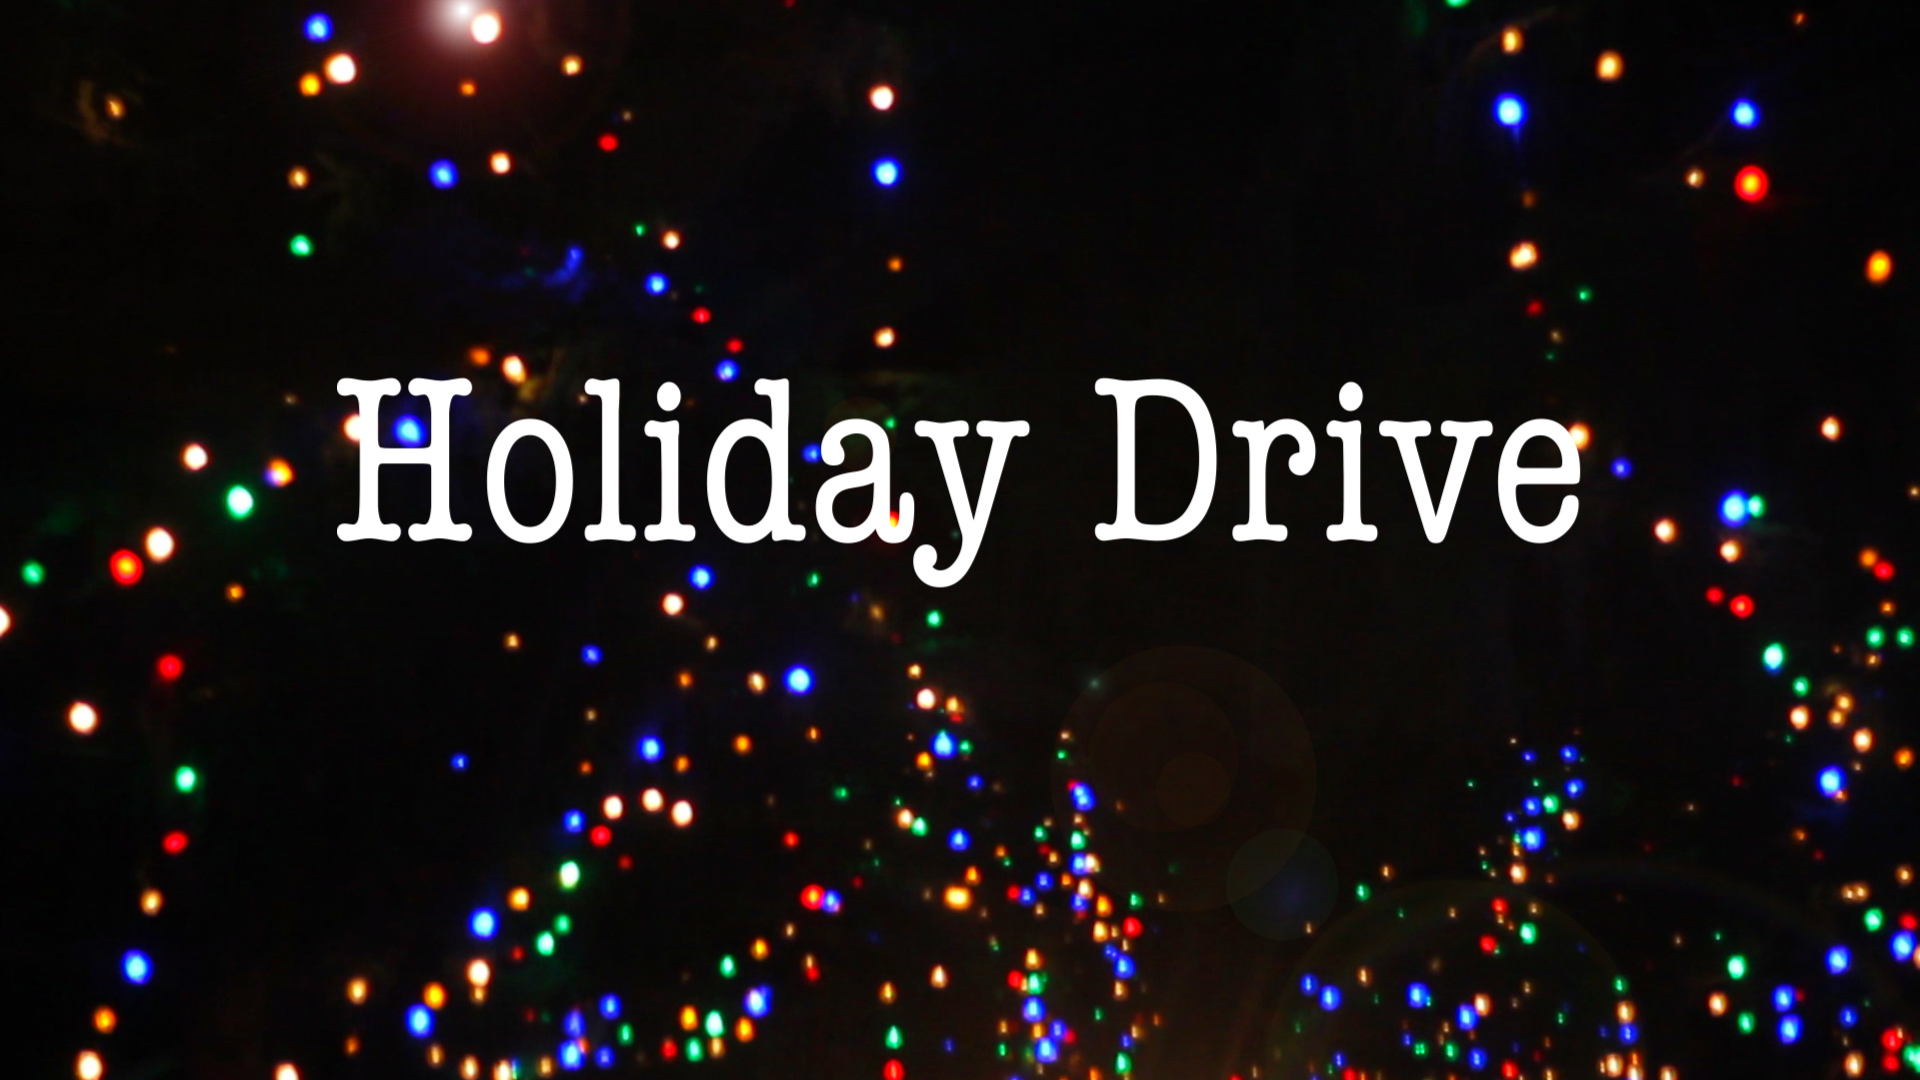 Holiday Drive-Ryan